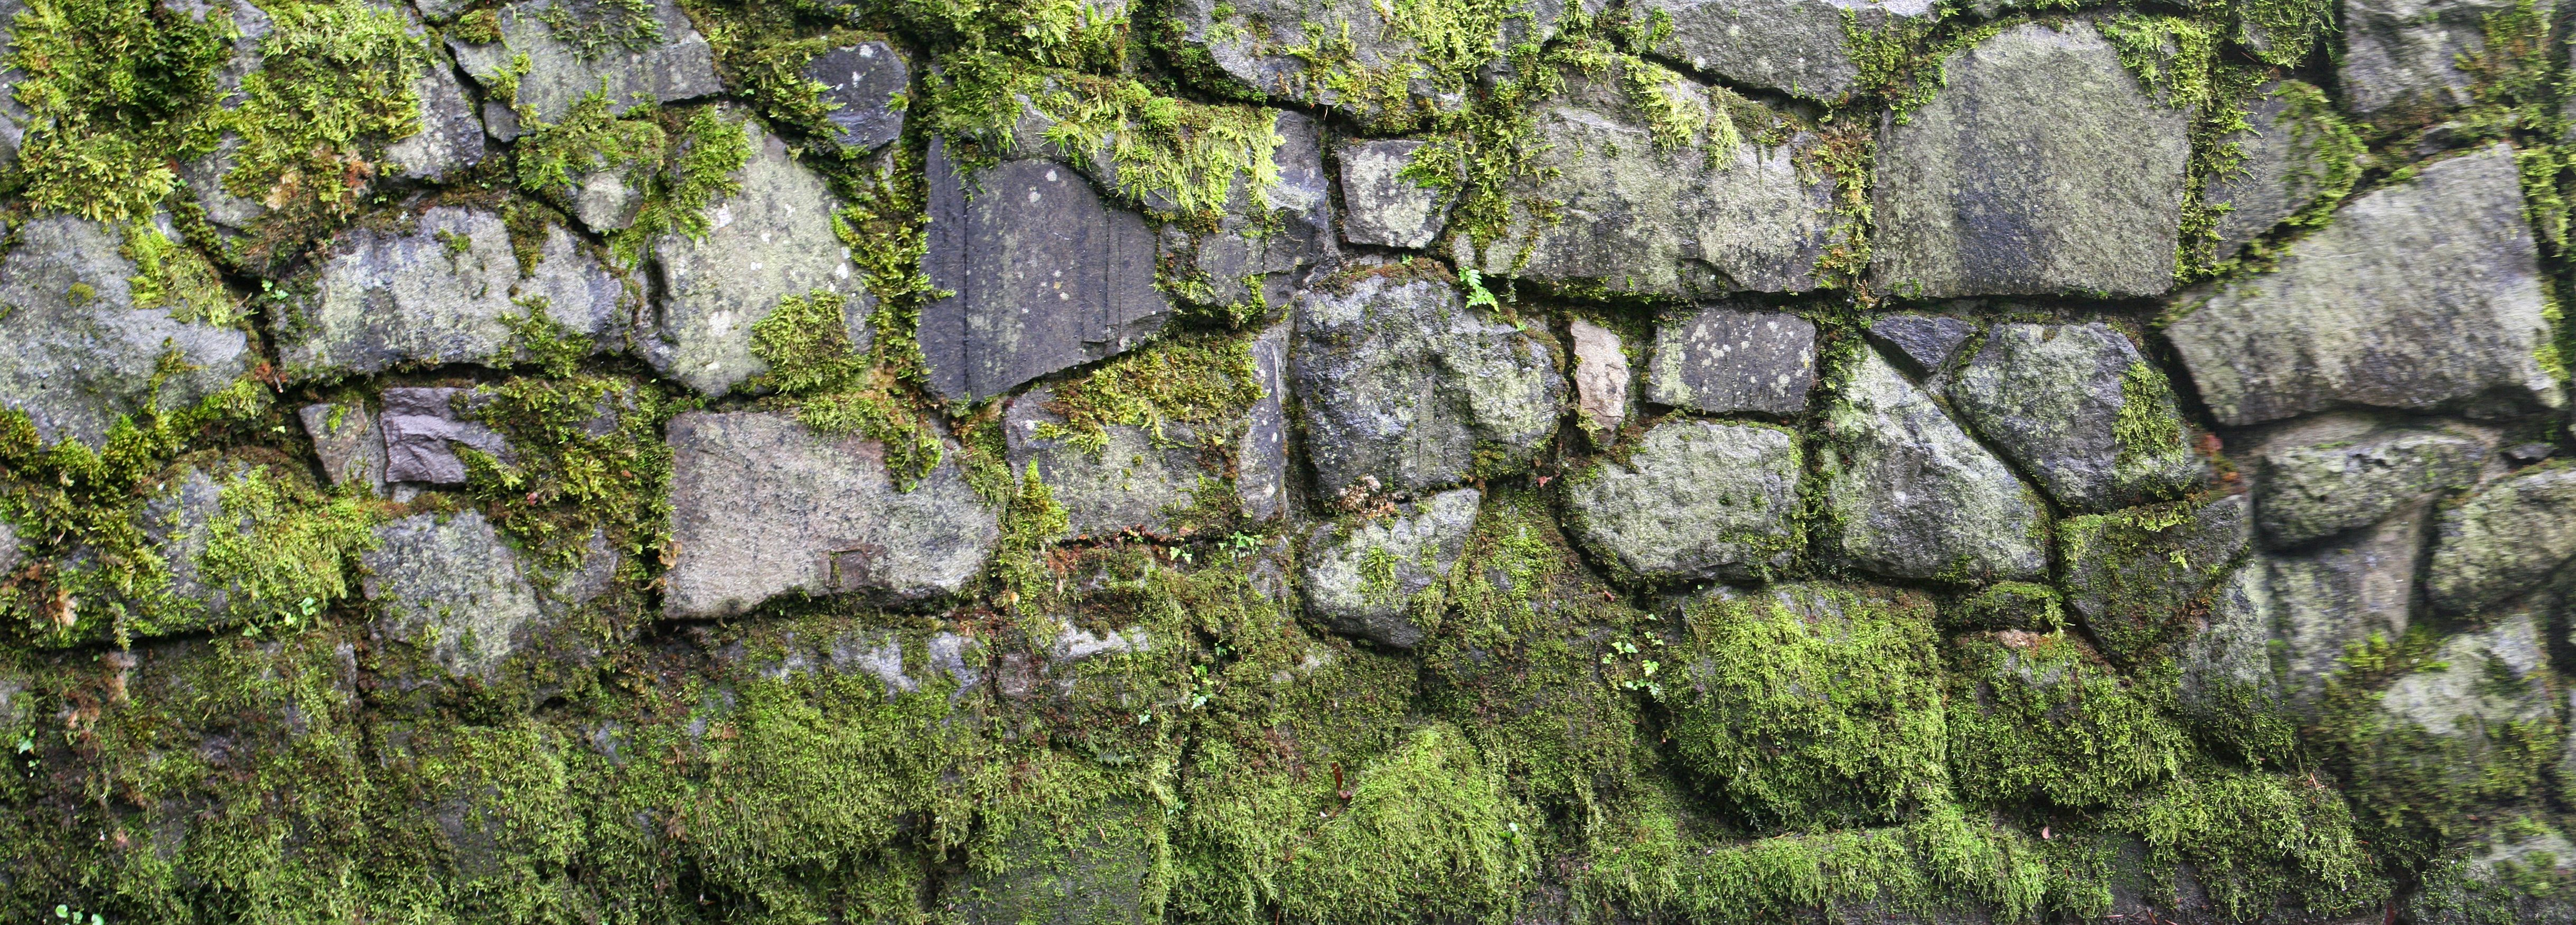 A natural rock wall with moss paint class pinterest a natural stone walls and stones - Flaunt your natural stone wall finishes ...